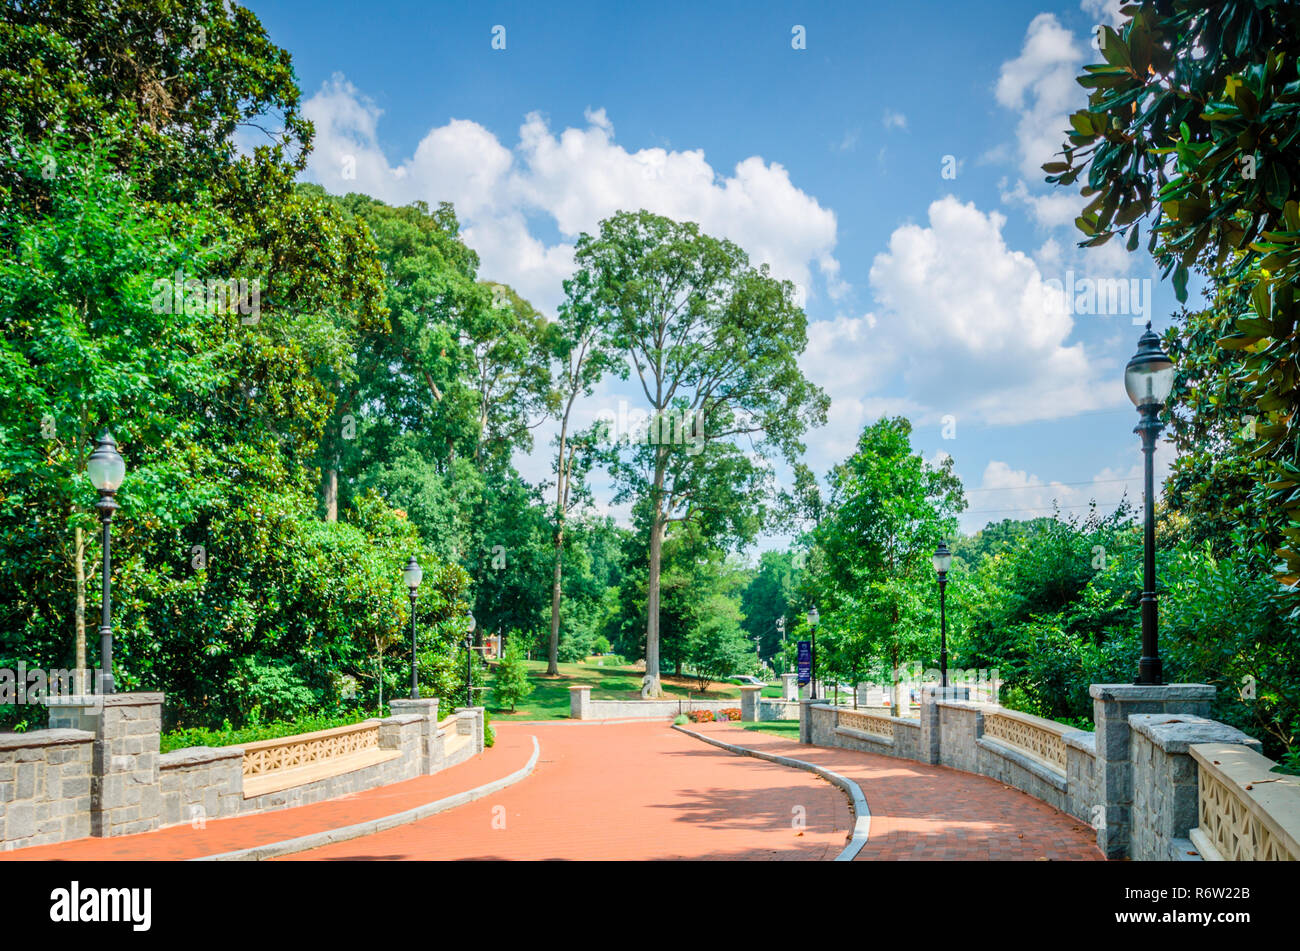 A winding driveway leads to Emory University, July 7, 2014, in Atlanta, Georgia. Emory was founded in 1836 and is a private research university. - Stock Image